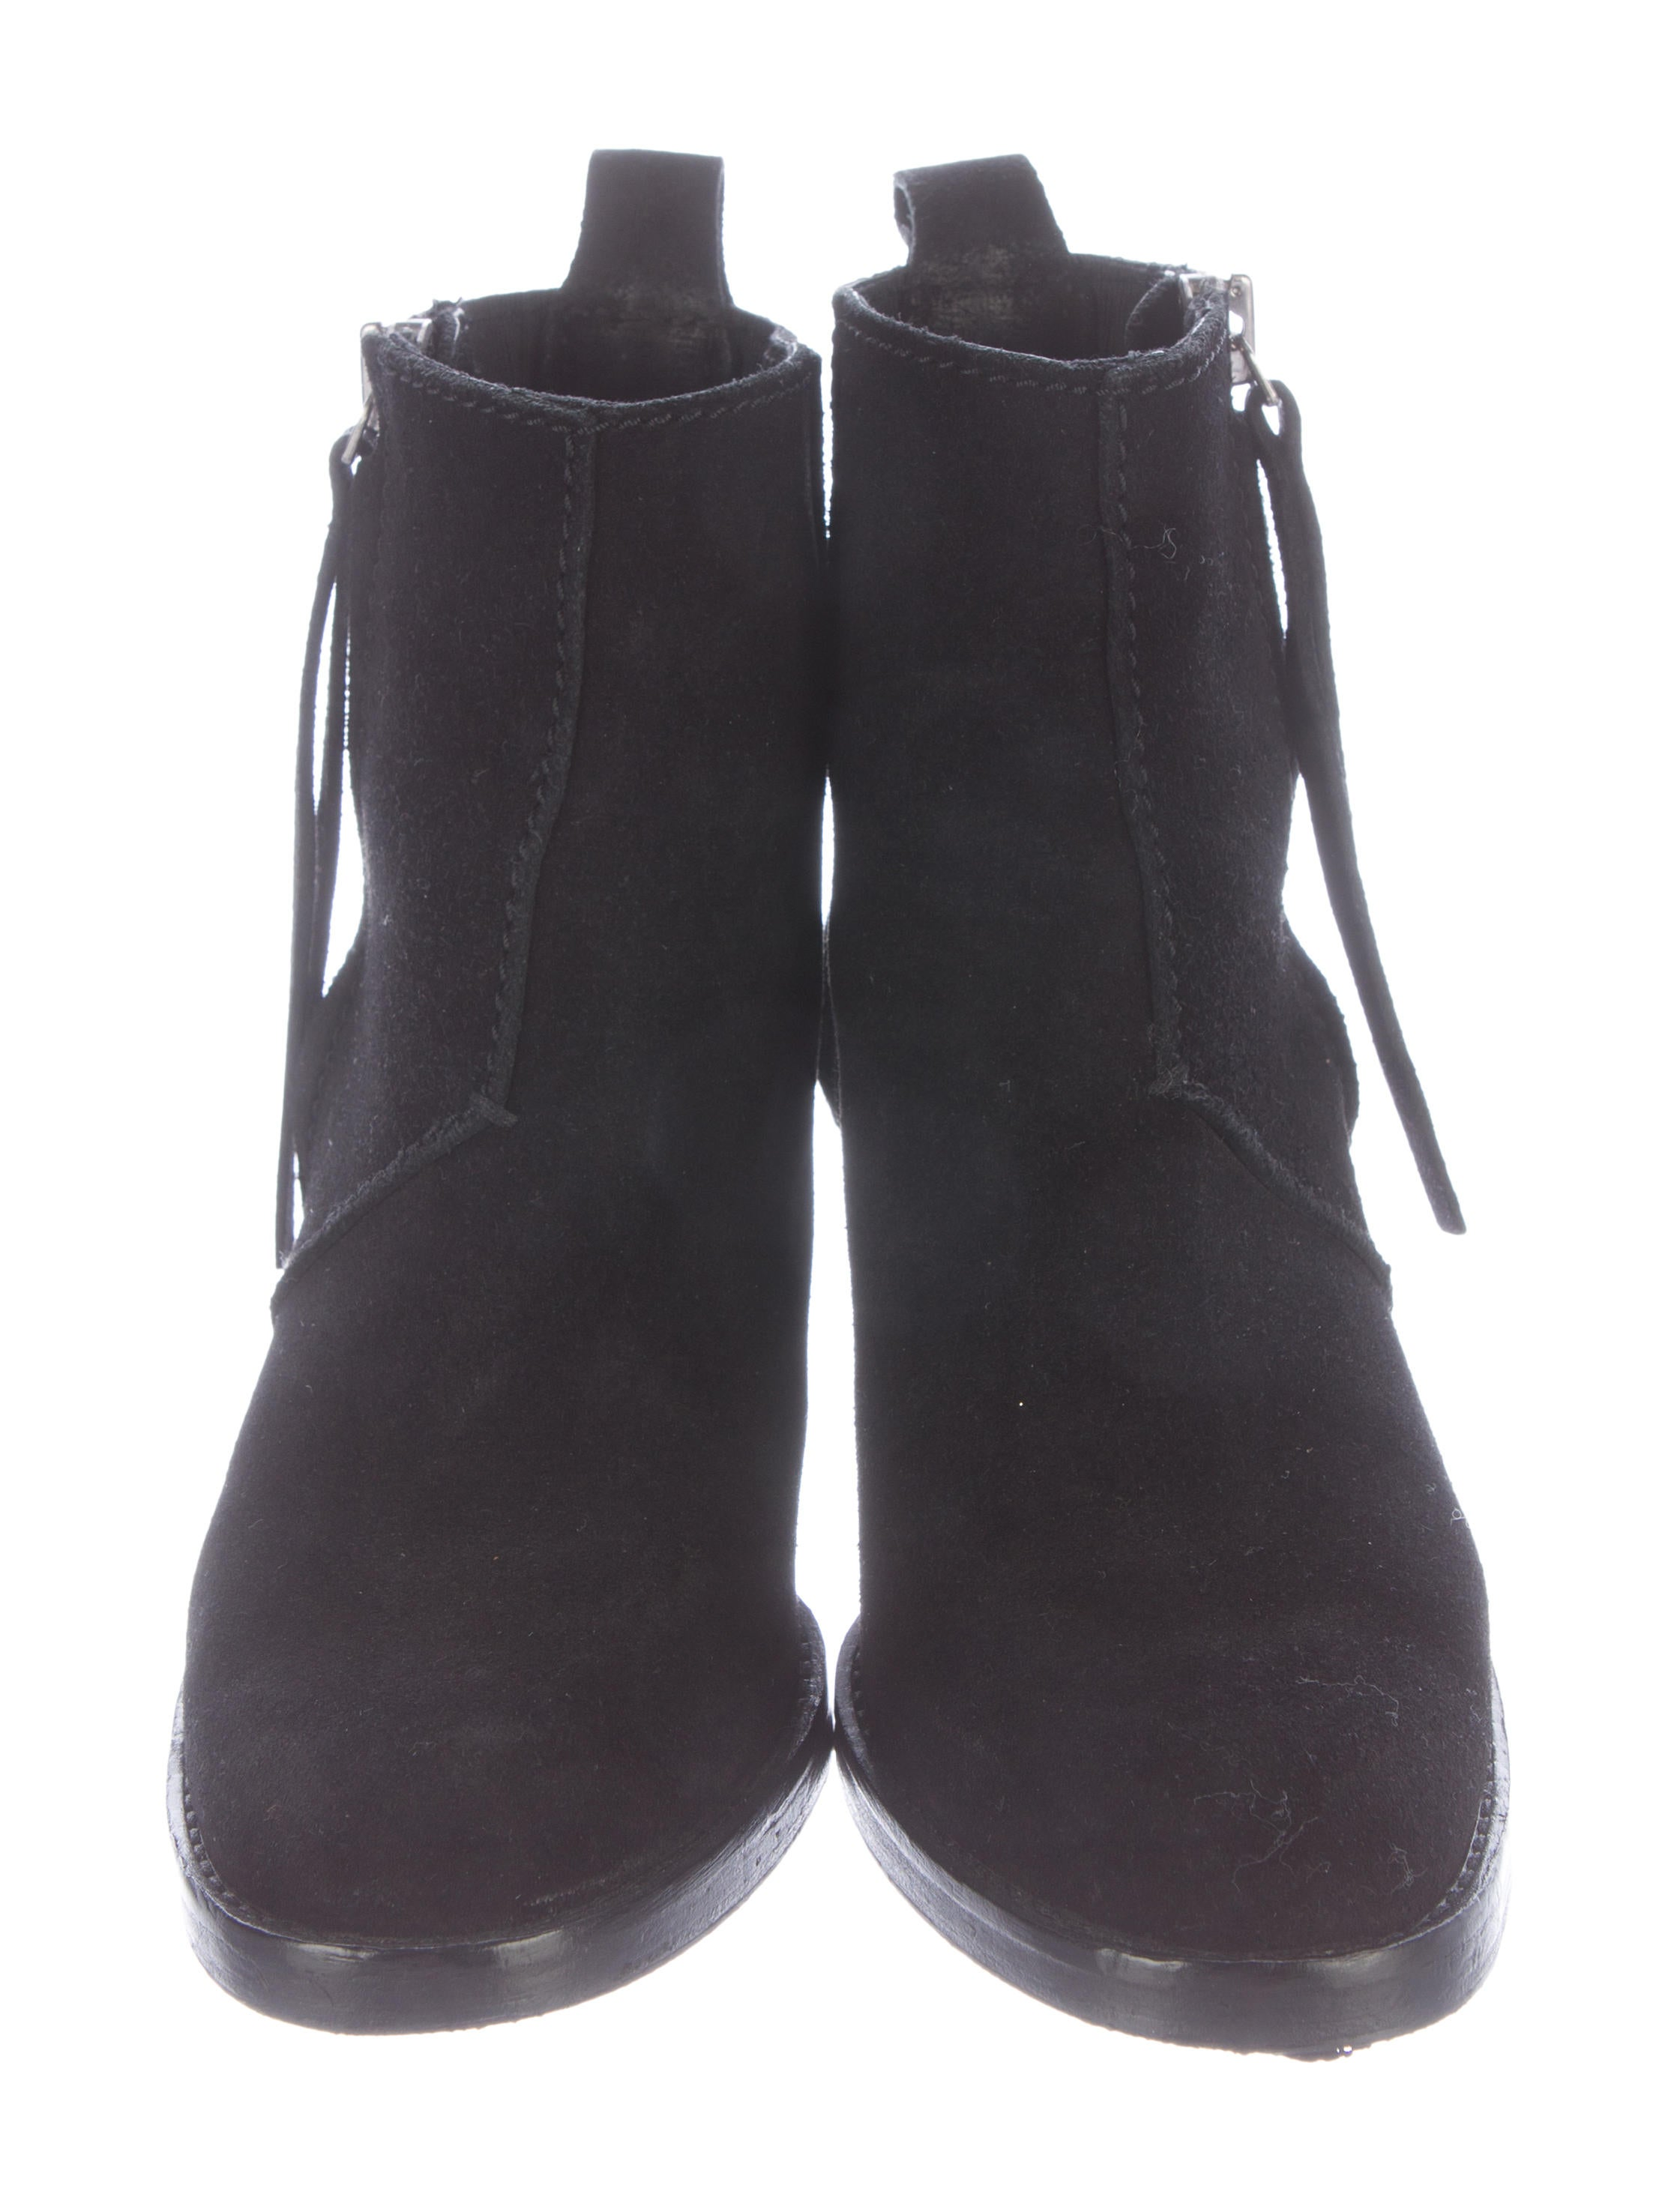 acne pistol suede ankle boots shoes acn26529 the realreal. Black Bedroom Furniture Sets. Home Design Ideas